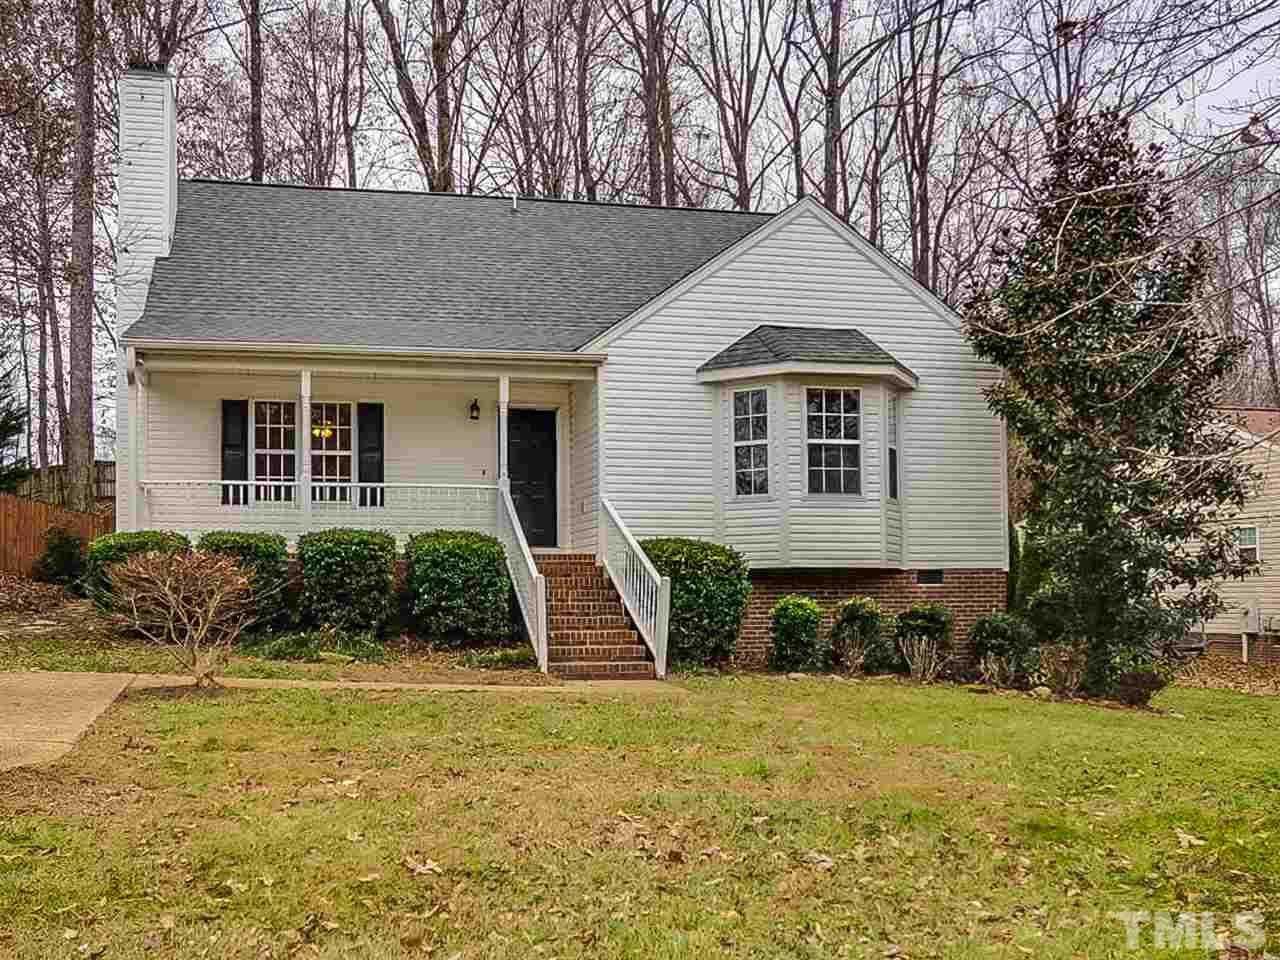 Surprising 609 Harris Point Way Wake Forest Nc 27587 Mls 2227734 Home Interior And Landscaping Ologienasavecom